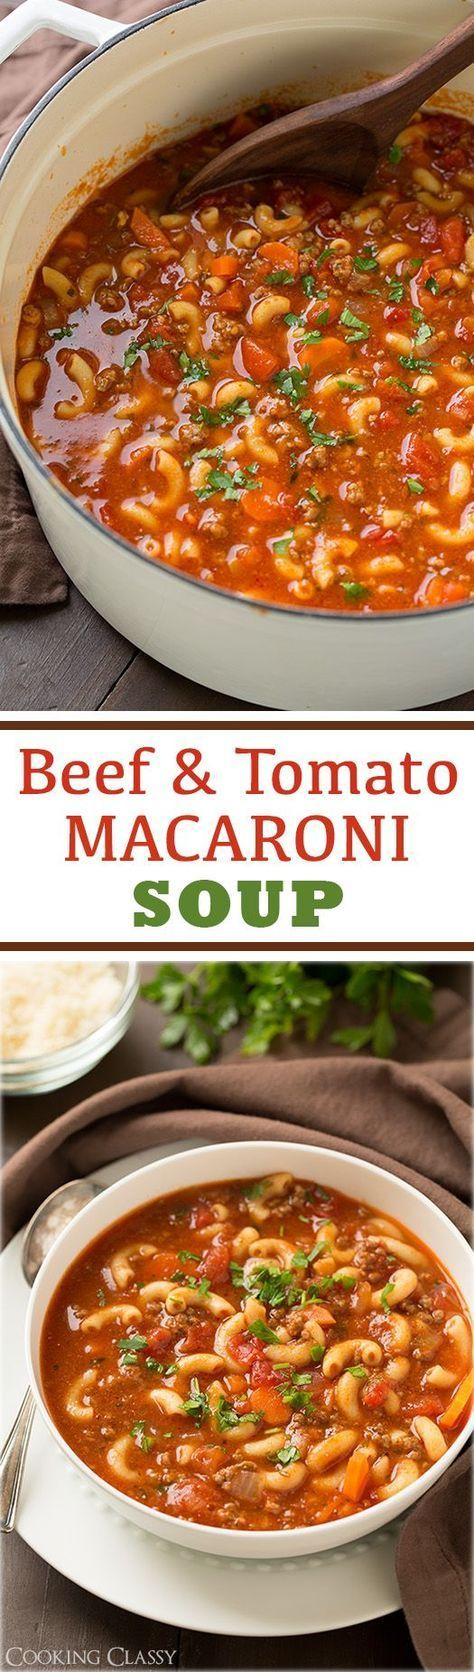 Beef and Tomato Macaroni Soup - one of my go to soup recipes! So comforting and delicious!